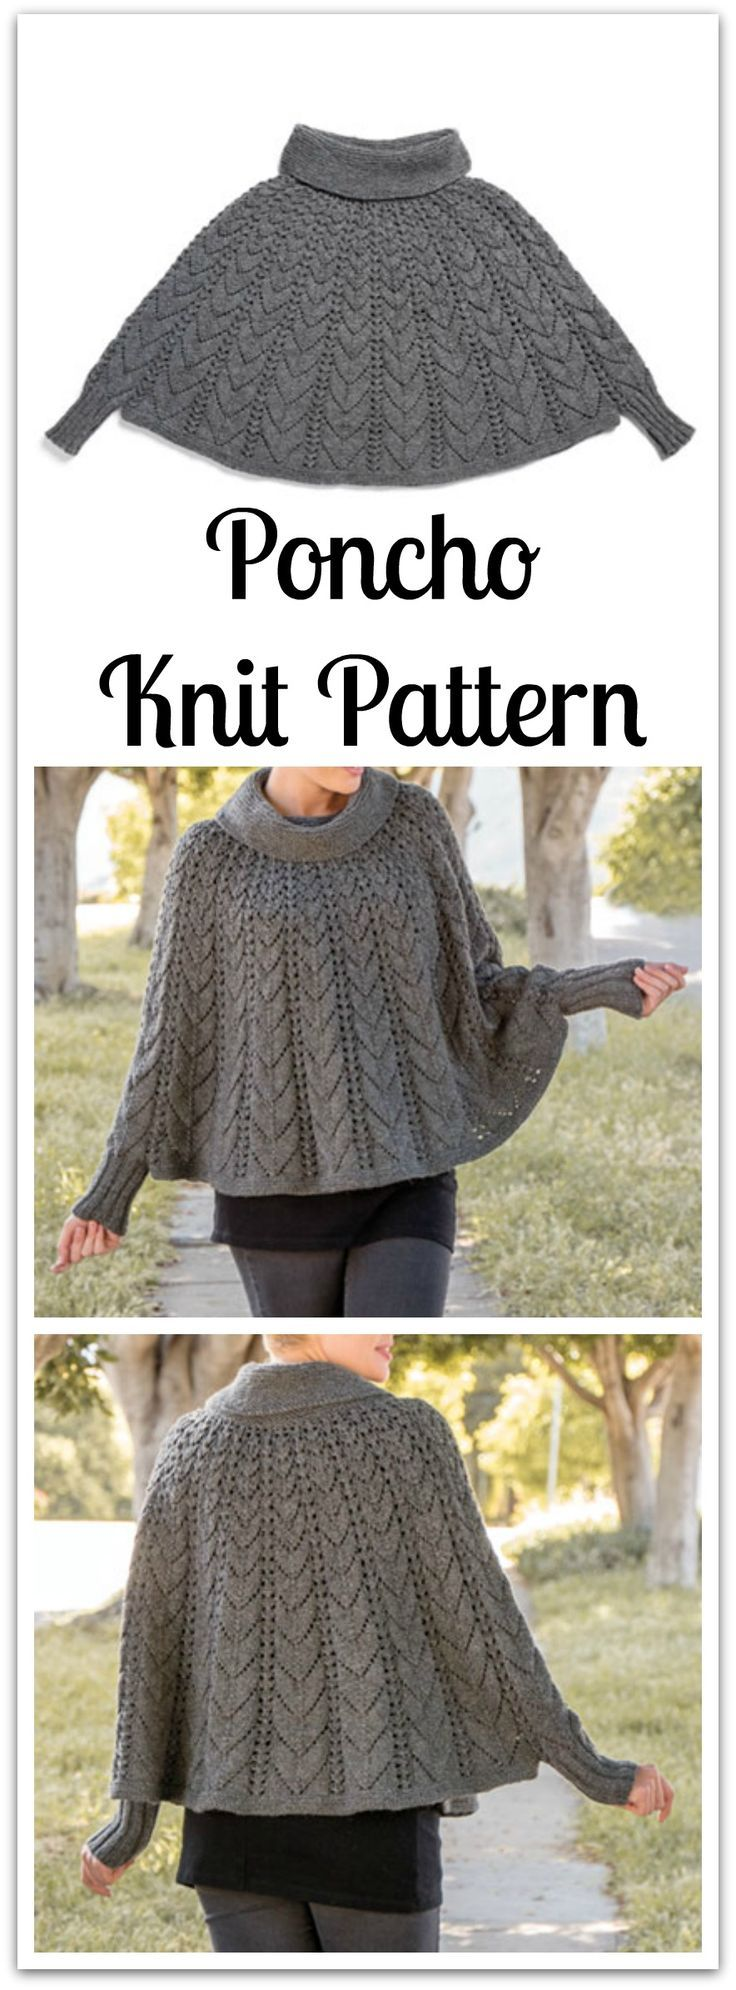 A stylish poncho ready to go wherever you go! This flowing poncho of mixed texture is knitted in the round, shaped by gradually expanding lace patterns, to create a luxurious and stylish classic. #ad #affiliate #knitting #pattern